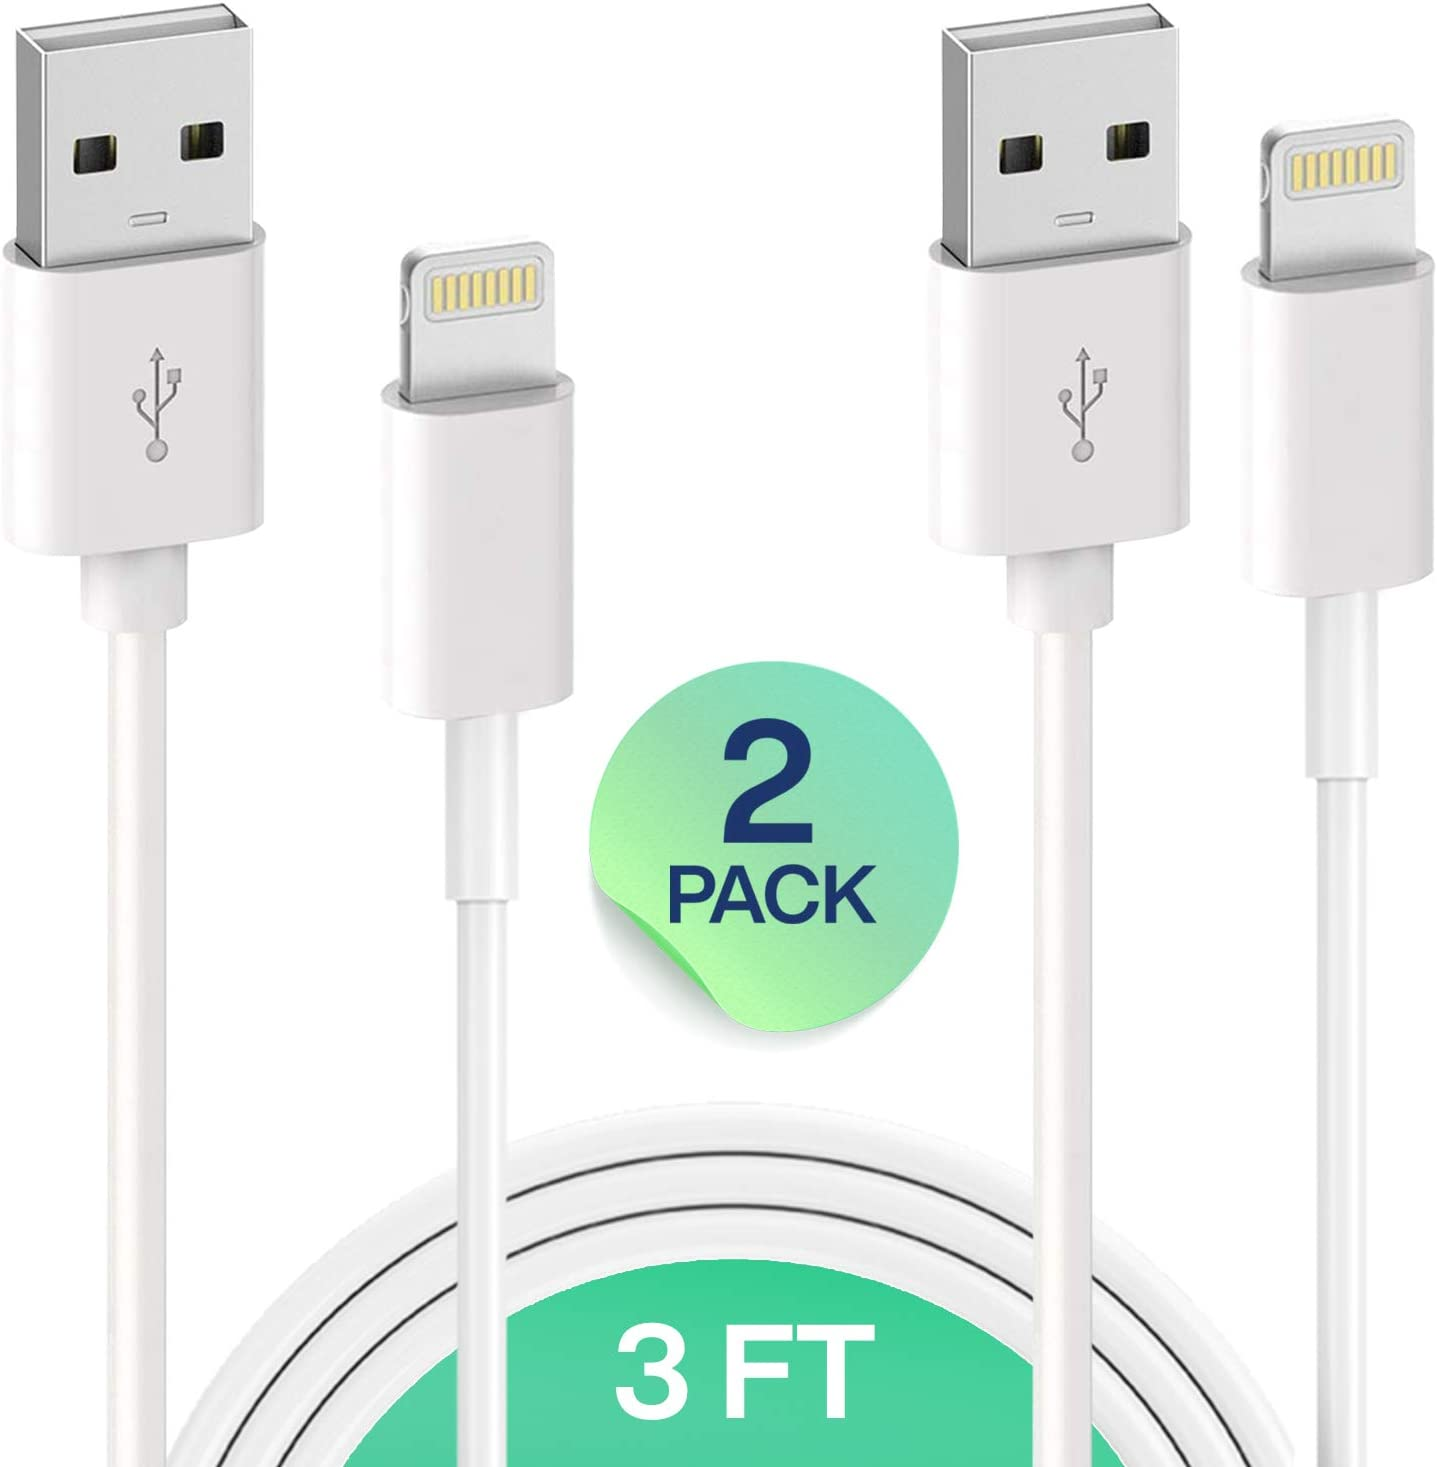 iPhone Cable Set MFI Truwire Charging /& Syncing Cord 2 Pack 3FT USB Cable for iPhone 11,Pro,Pro Max,Xs,Xs Max,XR,X,8,8 Plus,7,7 Plus,6S,6S Plus,iPad Air,Mini//iPod Touch//Case